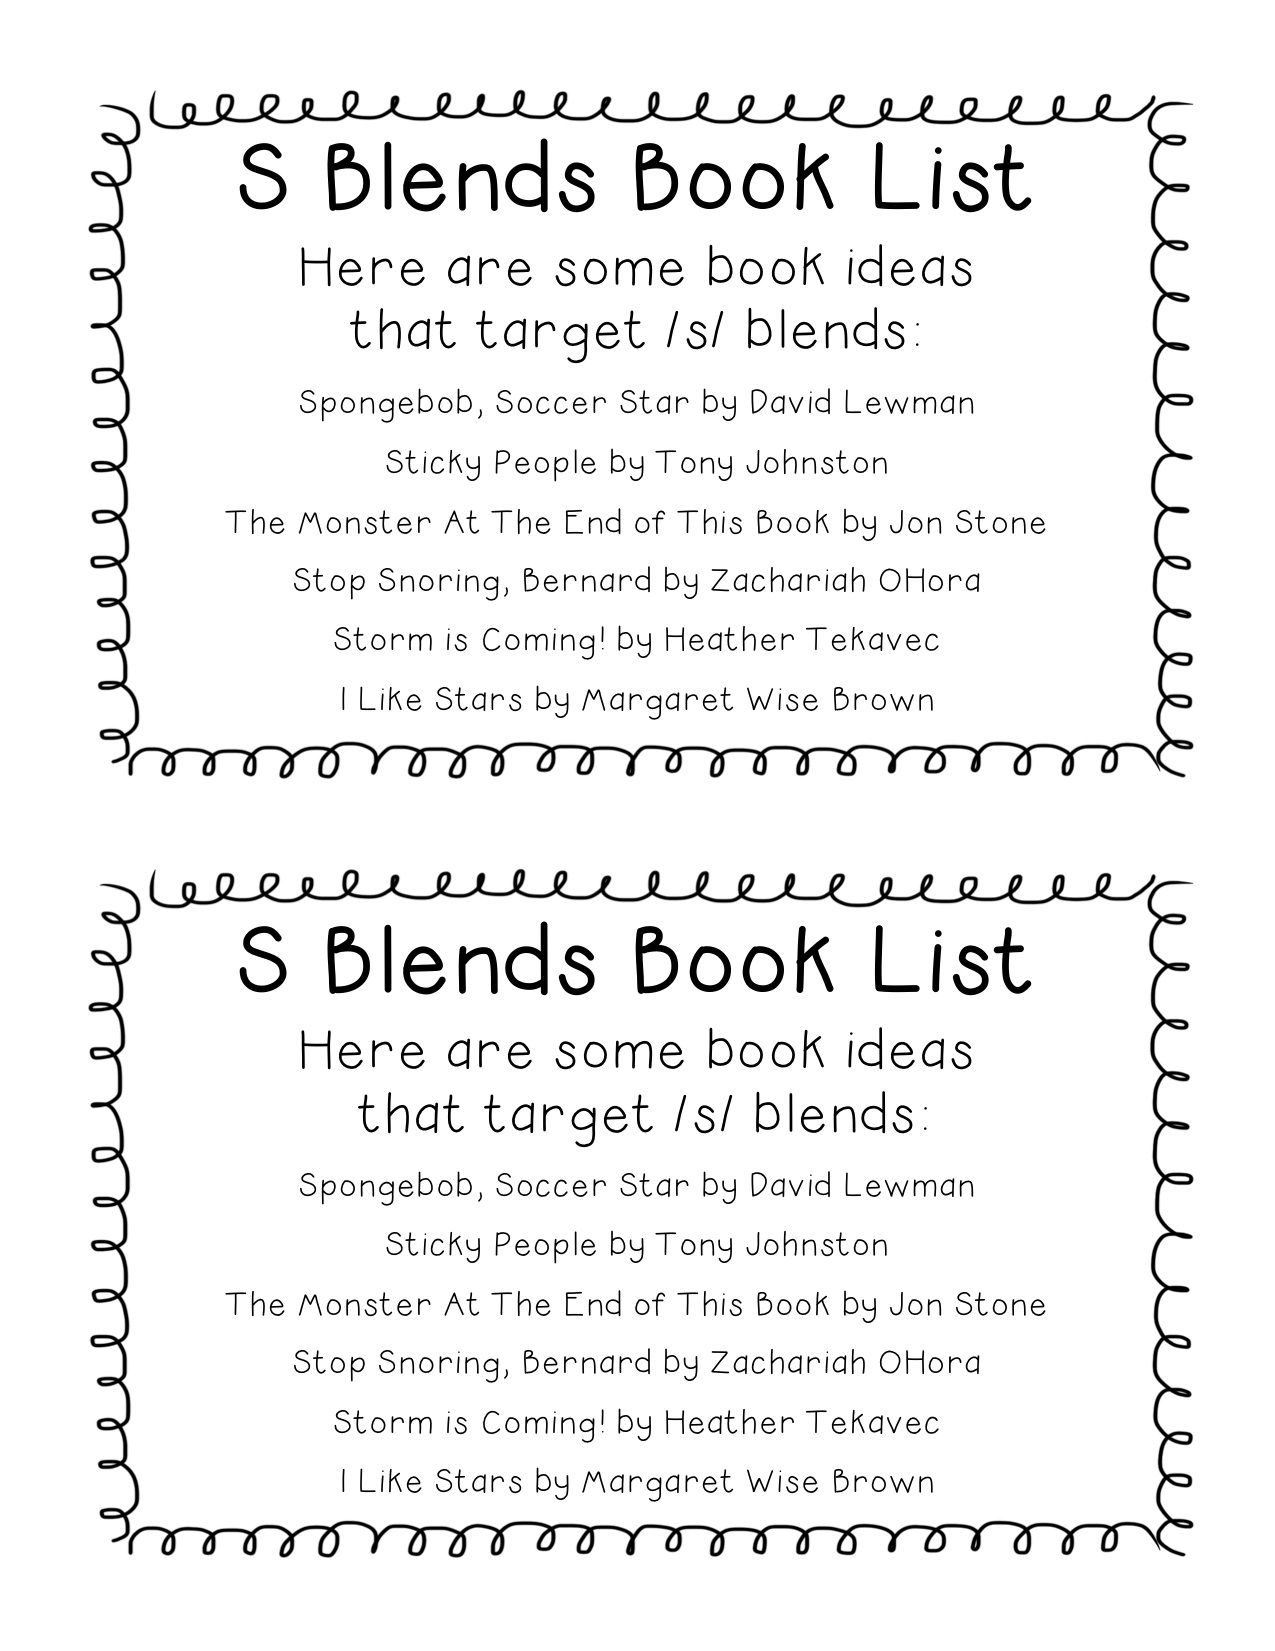 worksheet S Blends Worksheets 78 best images about blends on pinterest nonsense words bingo and pocket charts